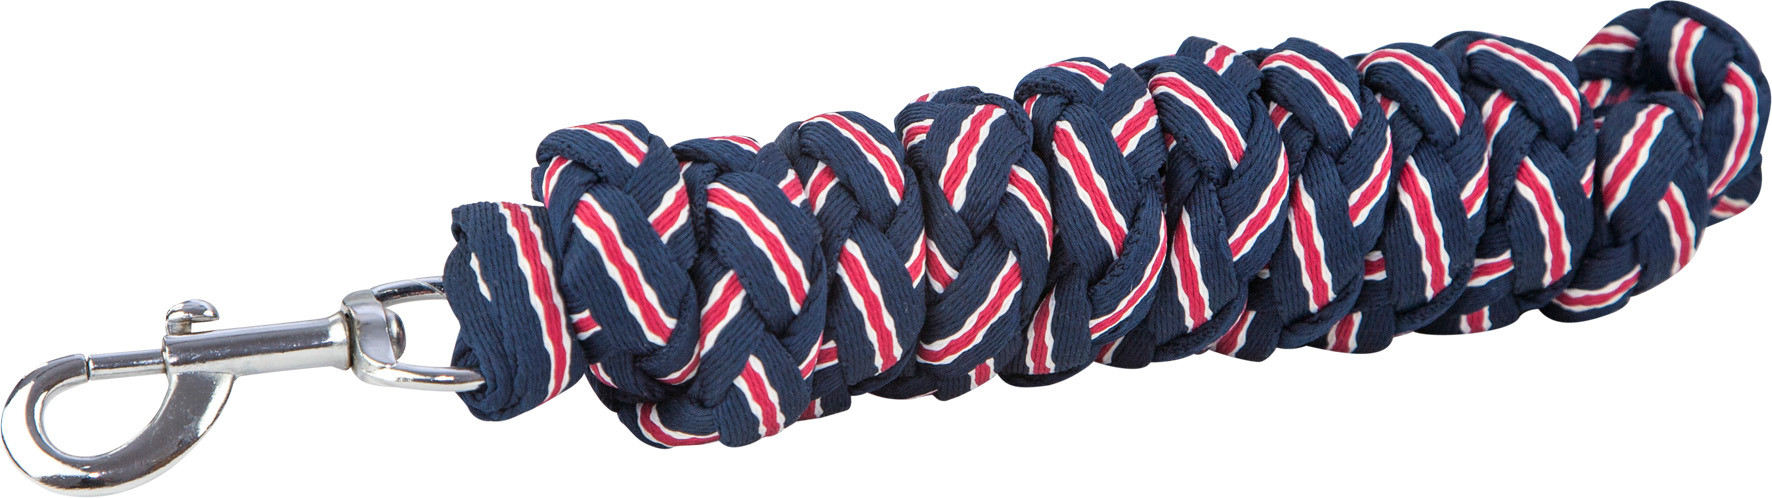 GRIMSKAFT SOFT MARINBLÅ-navy/red/white/FS